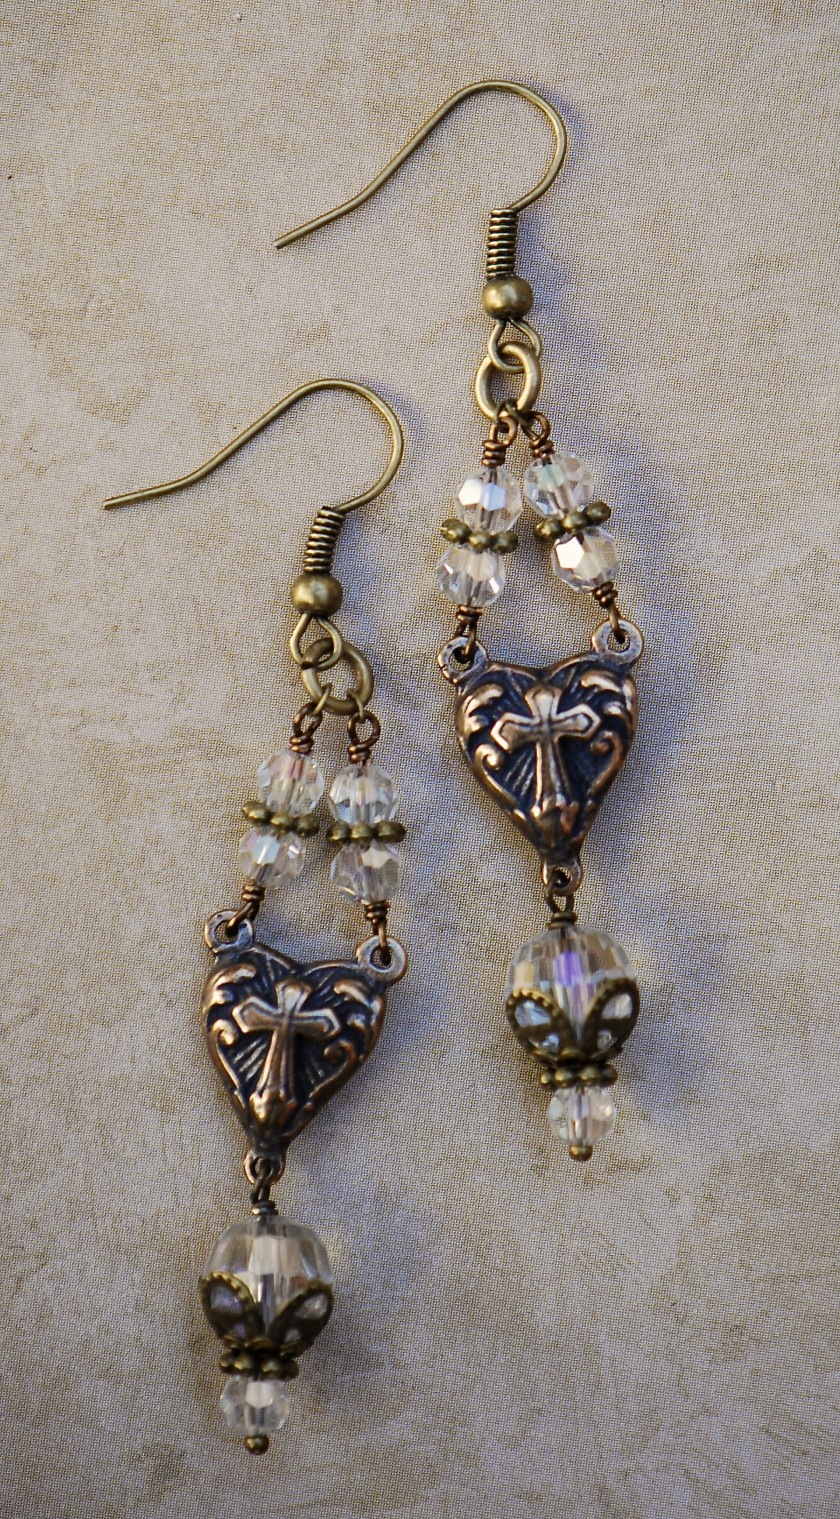 The Seraphym Earrings of Divine Love